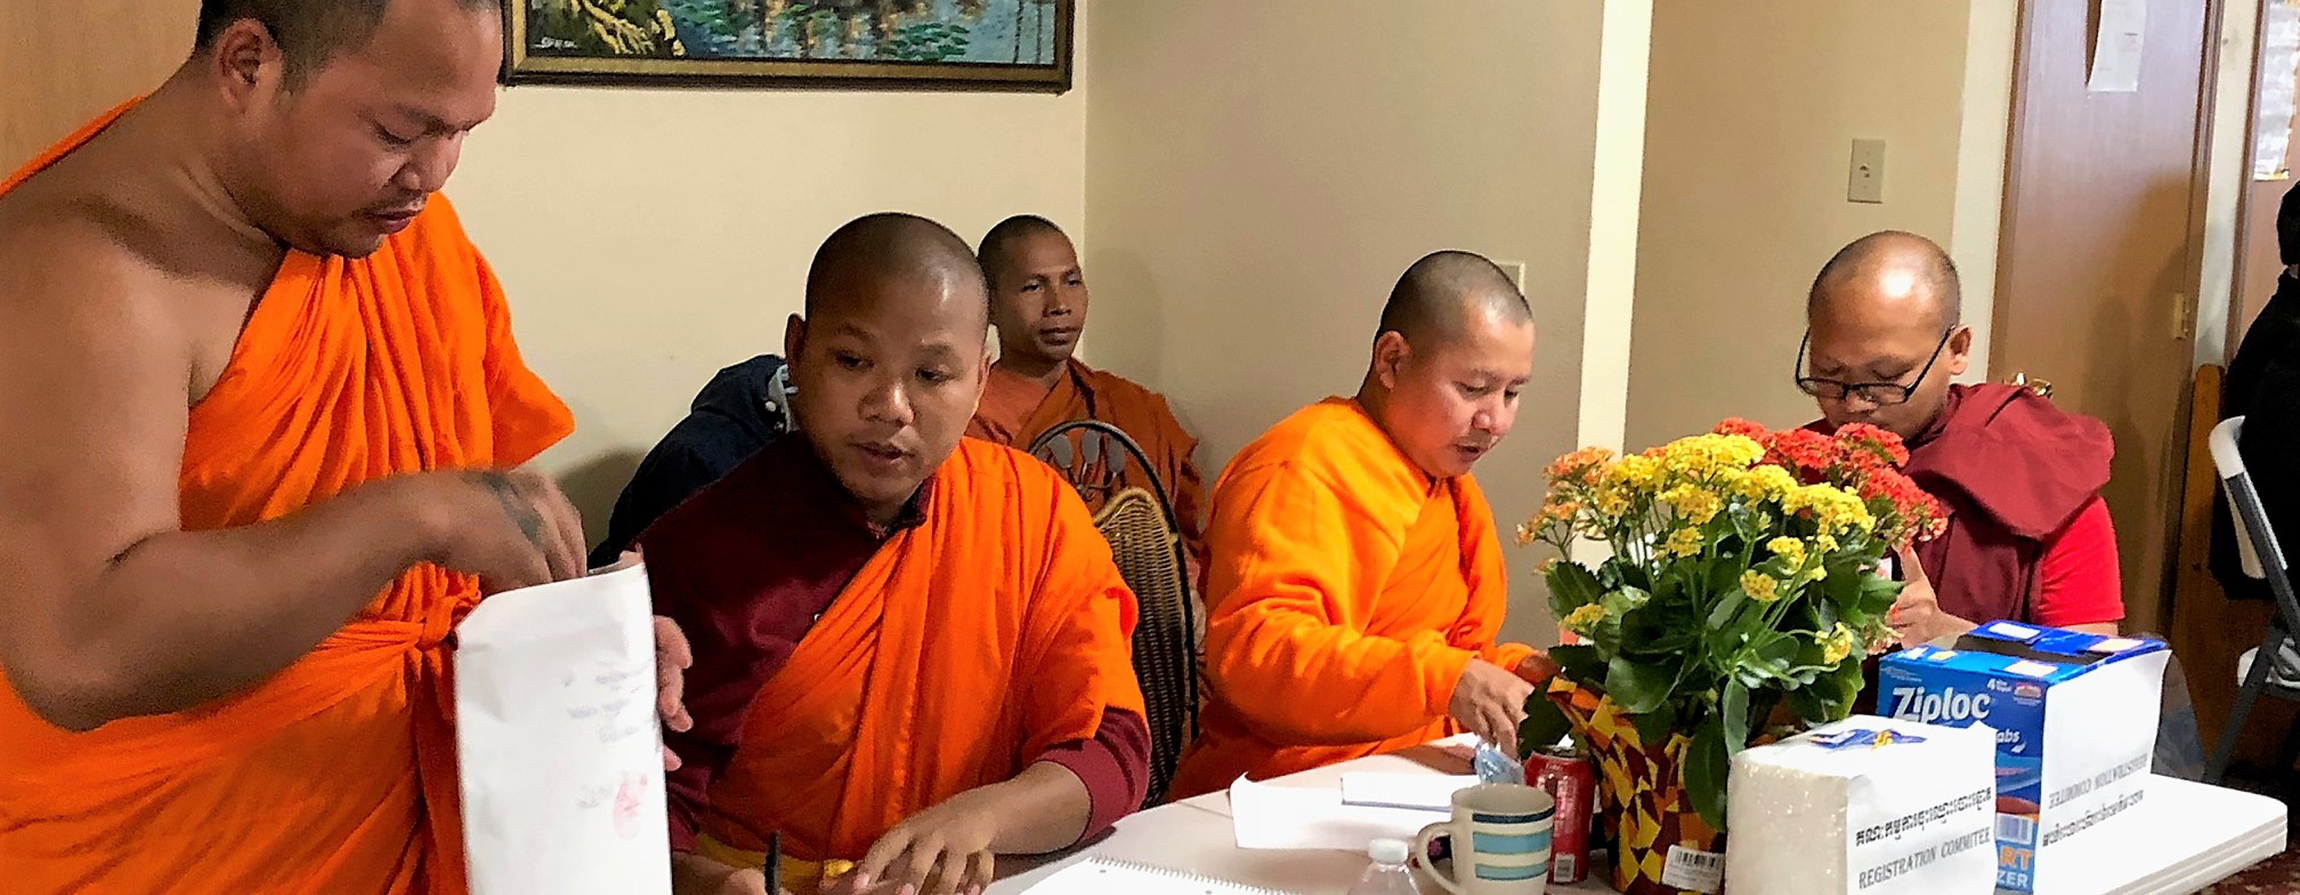 Monks from Seattle's Watt Dhammacakkaram overseeing voter registration, in the careful and transparent process the Cambodian sangha used to democratically elect a new board